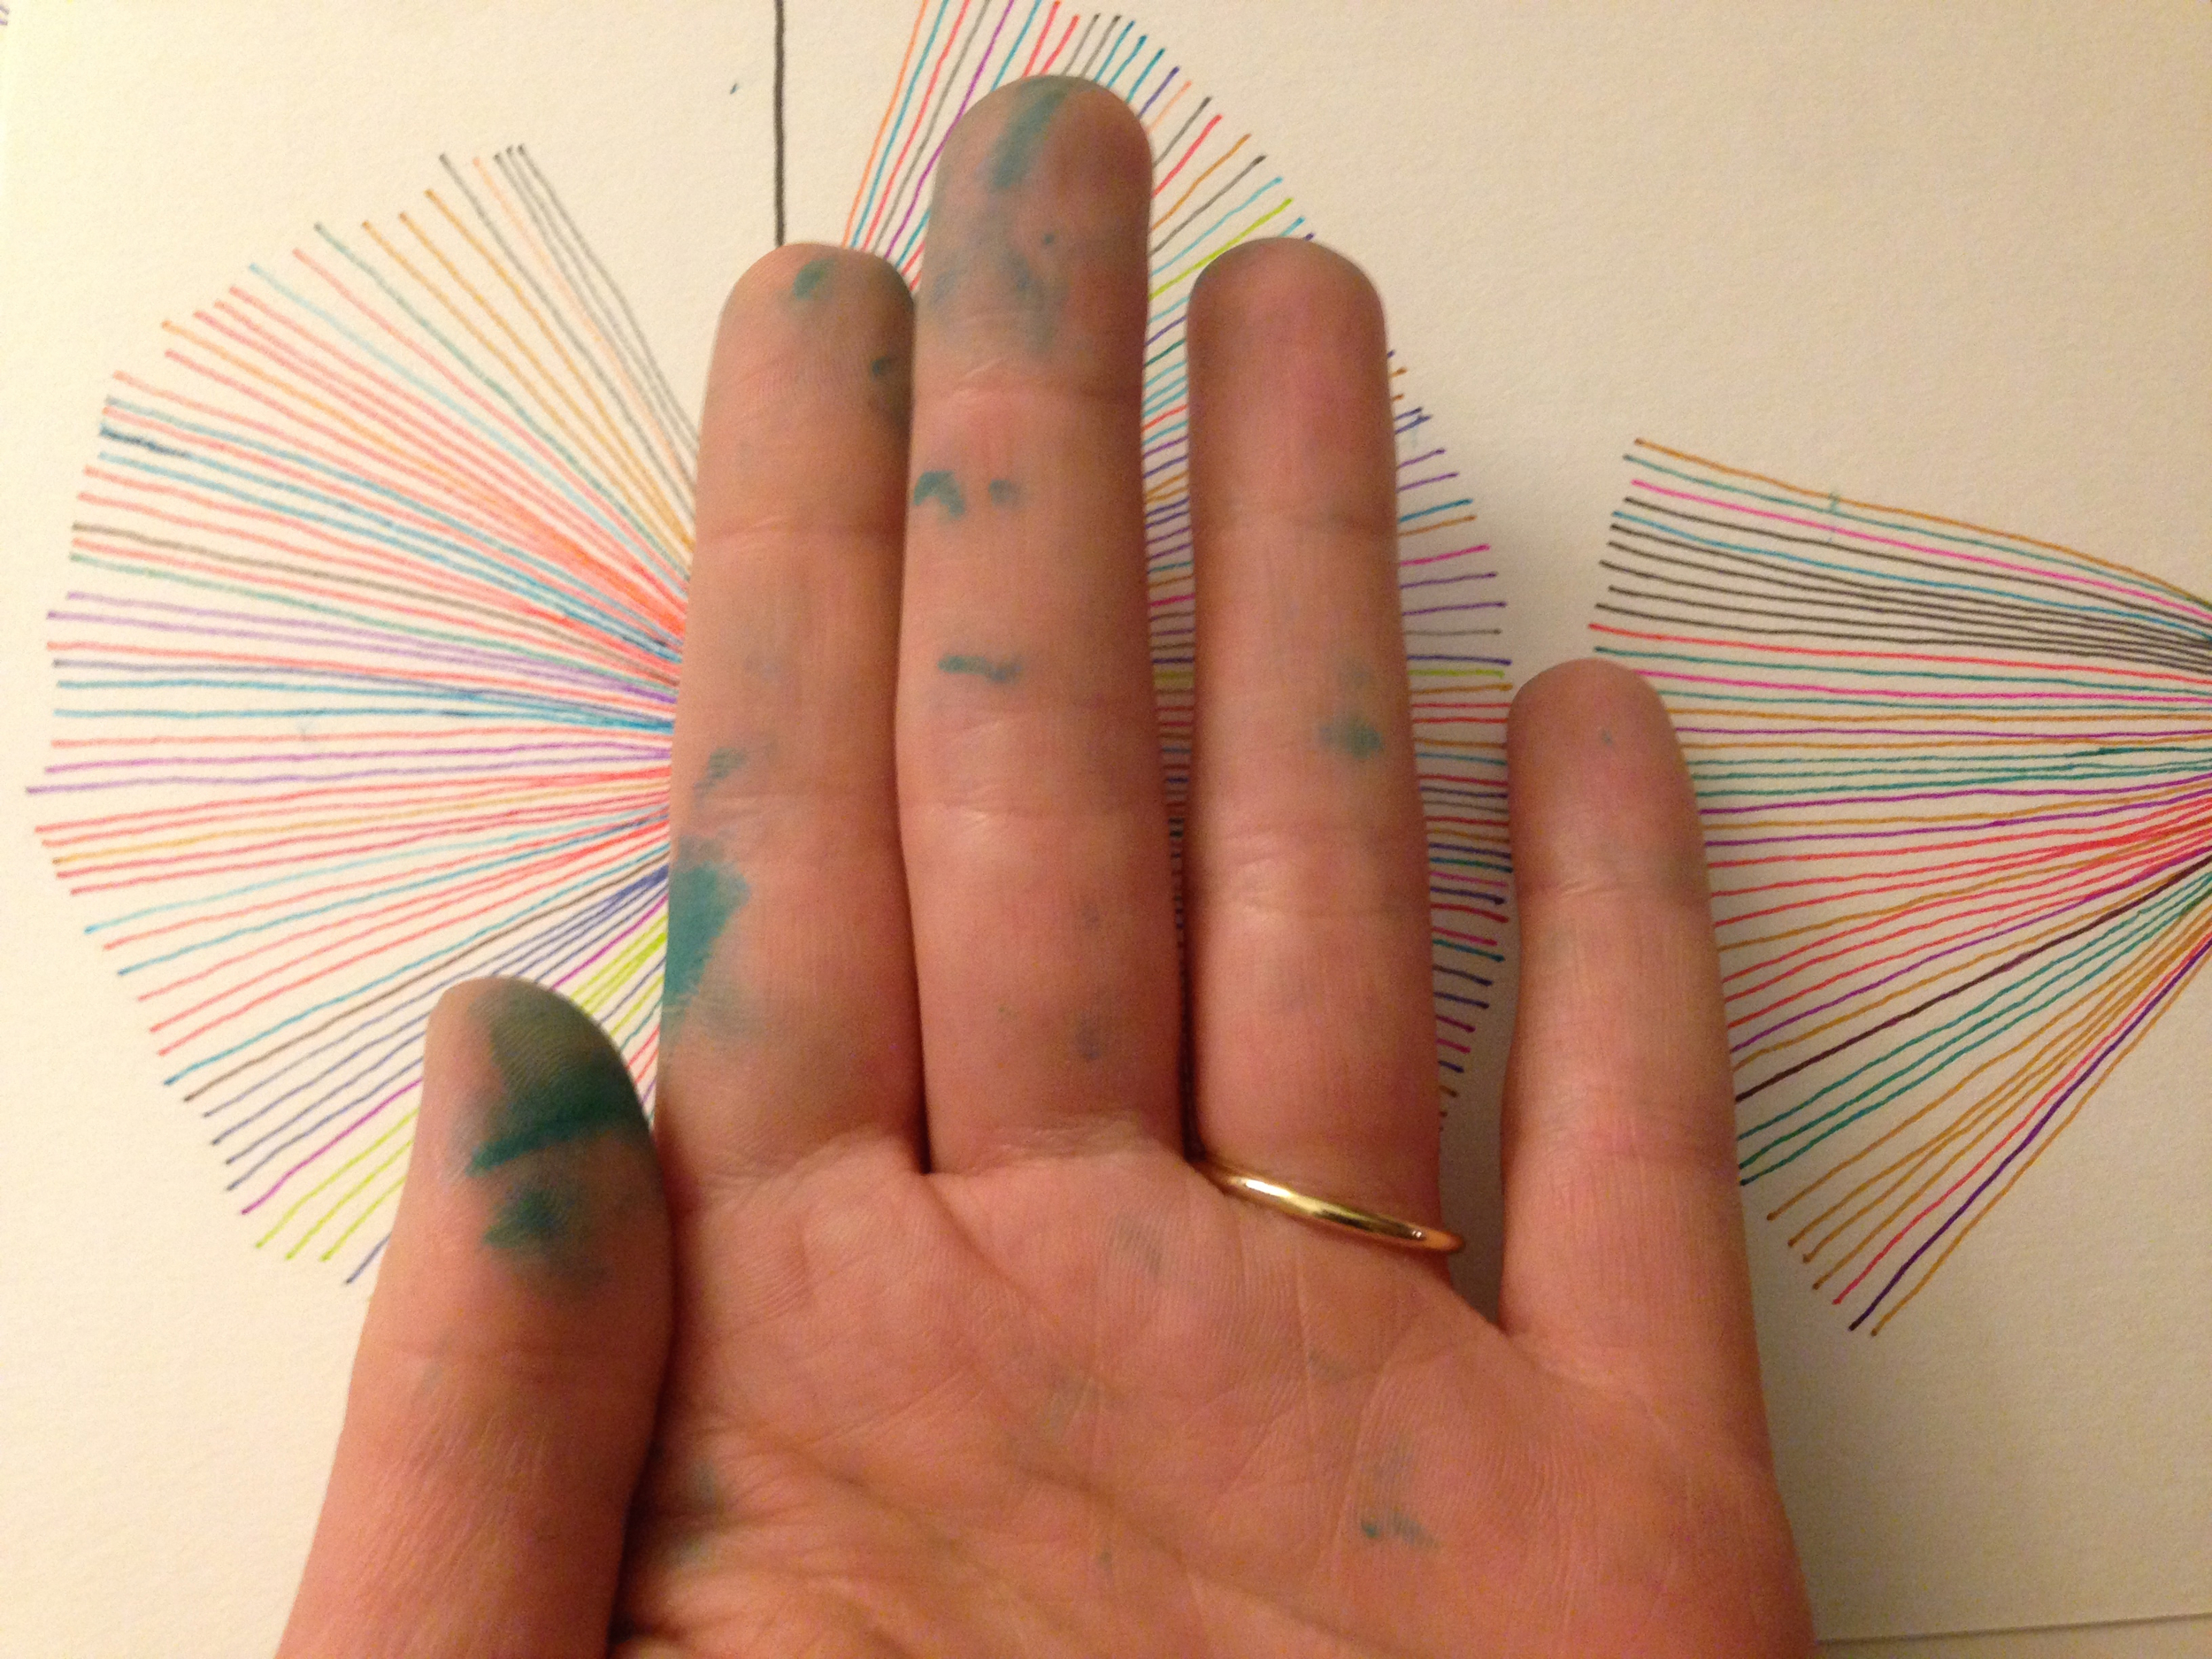 Evidence of inky fingers and general pissed-off demeanour